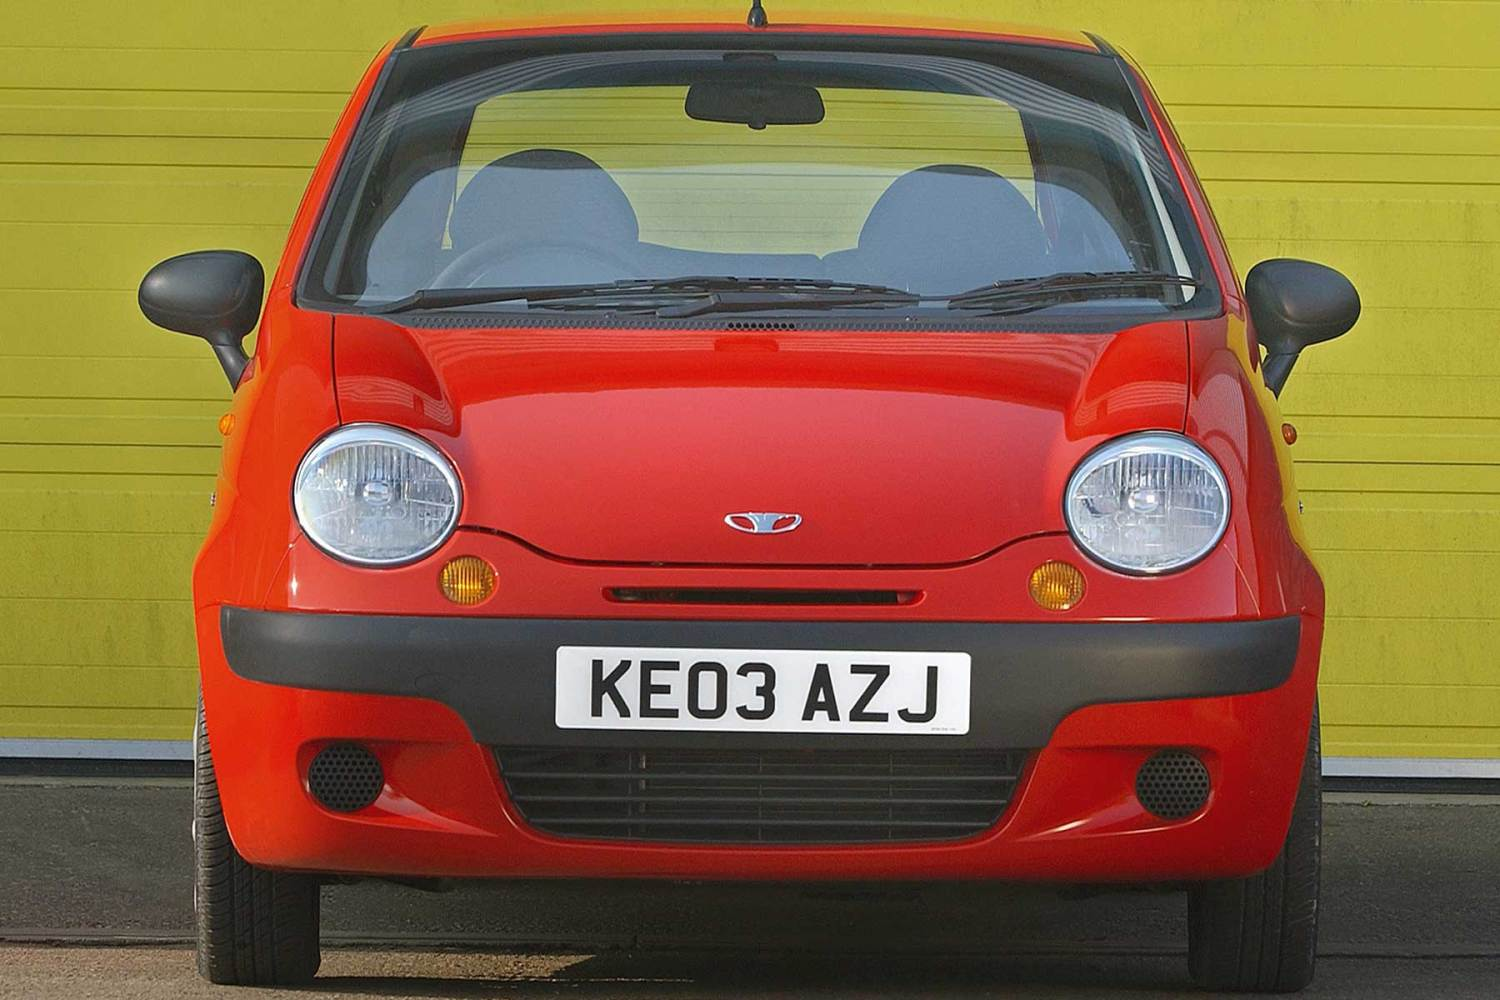 The cheapest cars to insure for 17-18 year olds: Daewoo Matiz